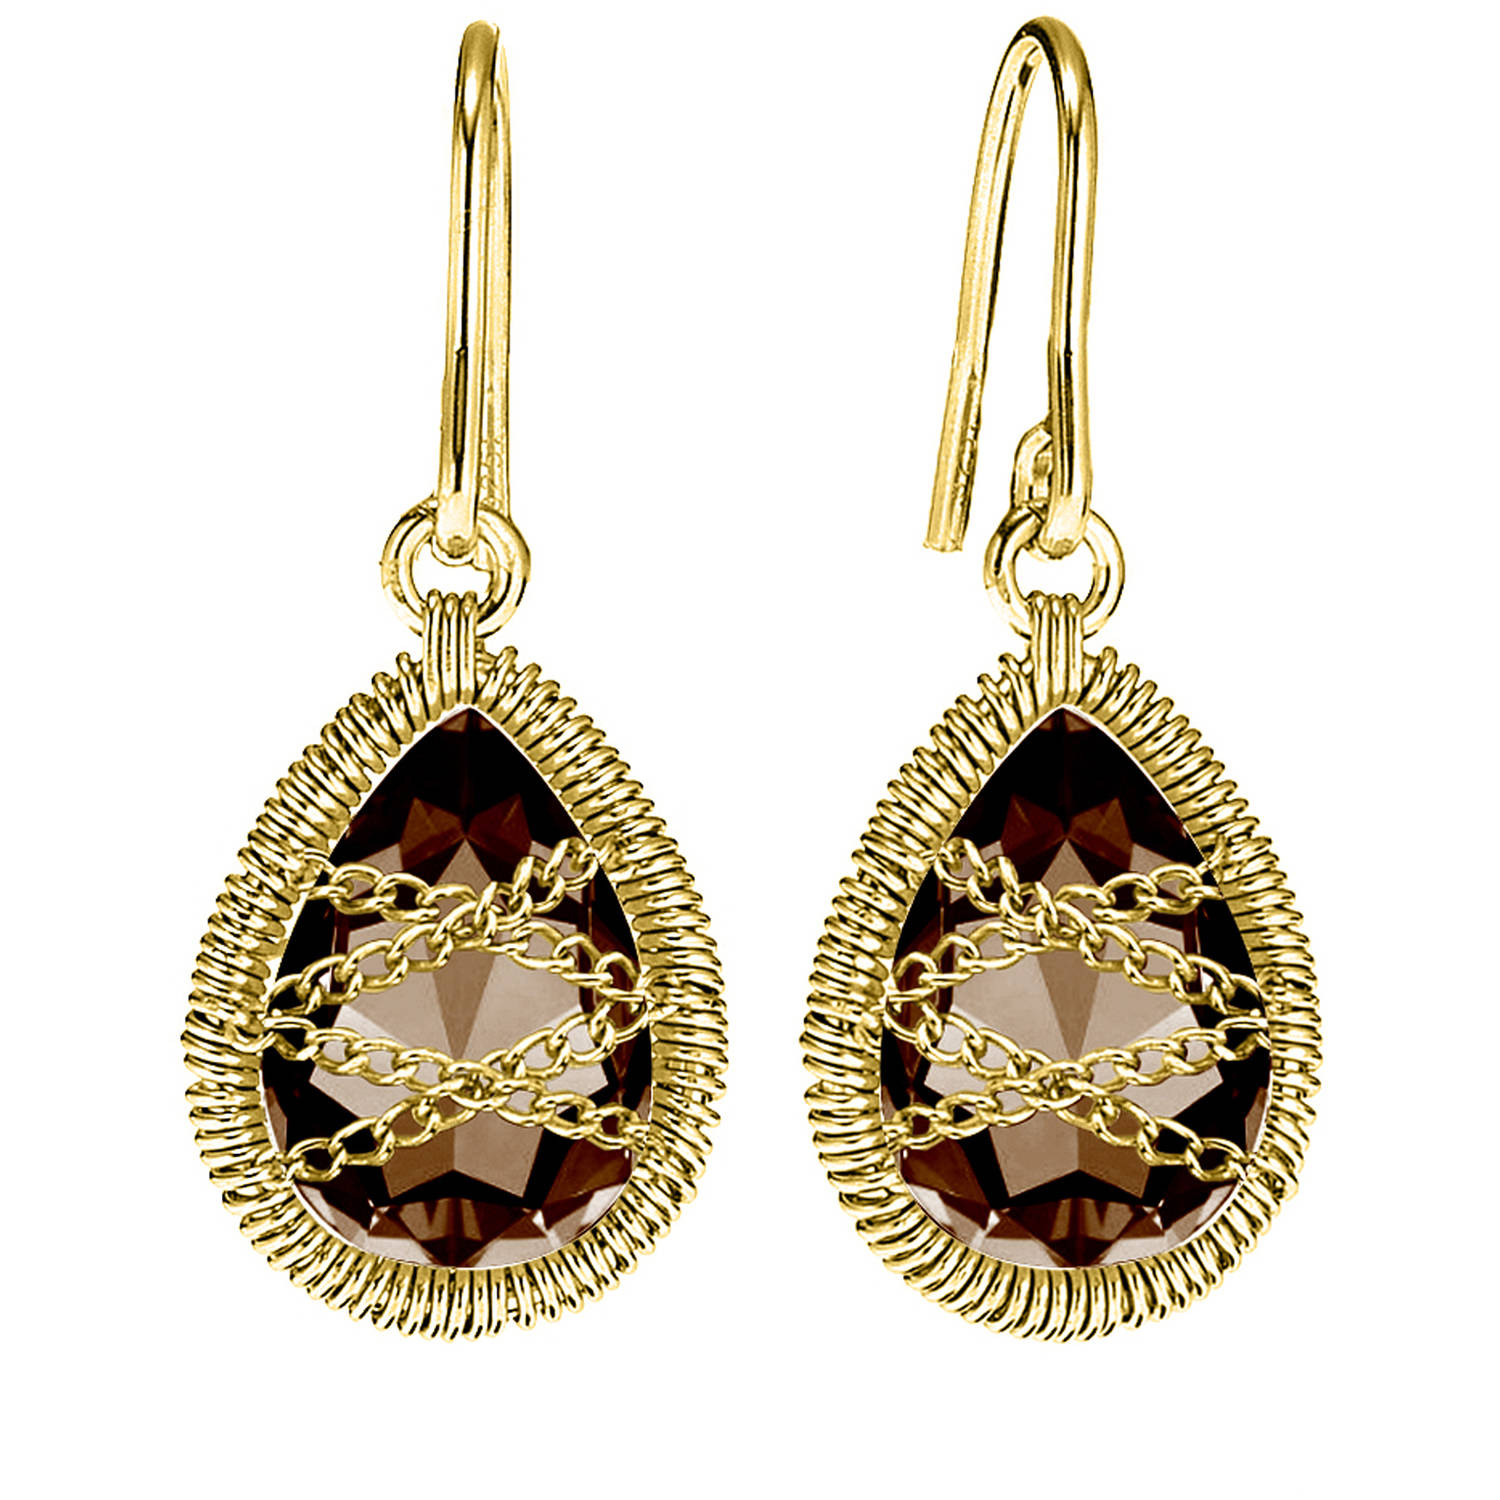 Image of 5th & Main 18kt Gold over Sterling Silver Hand-Wrapped Teardrop Smokey Quartz Earrings